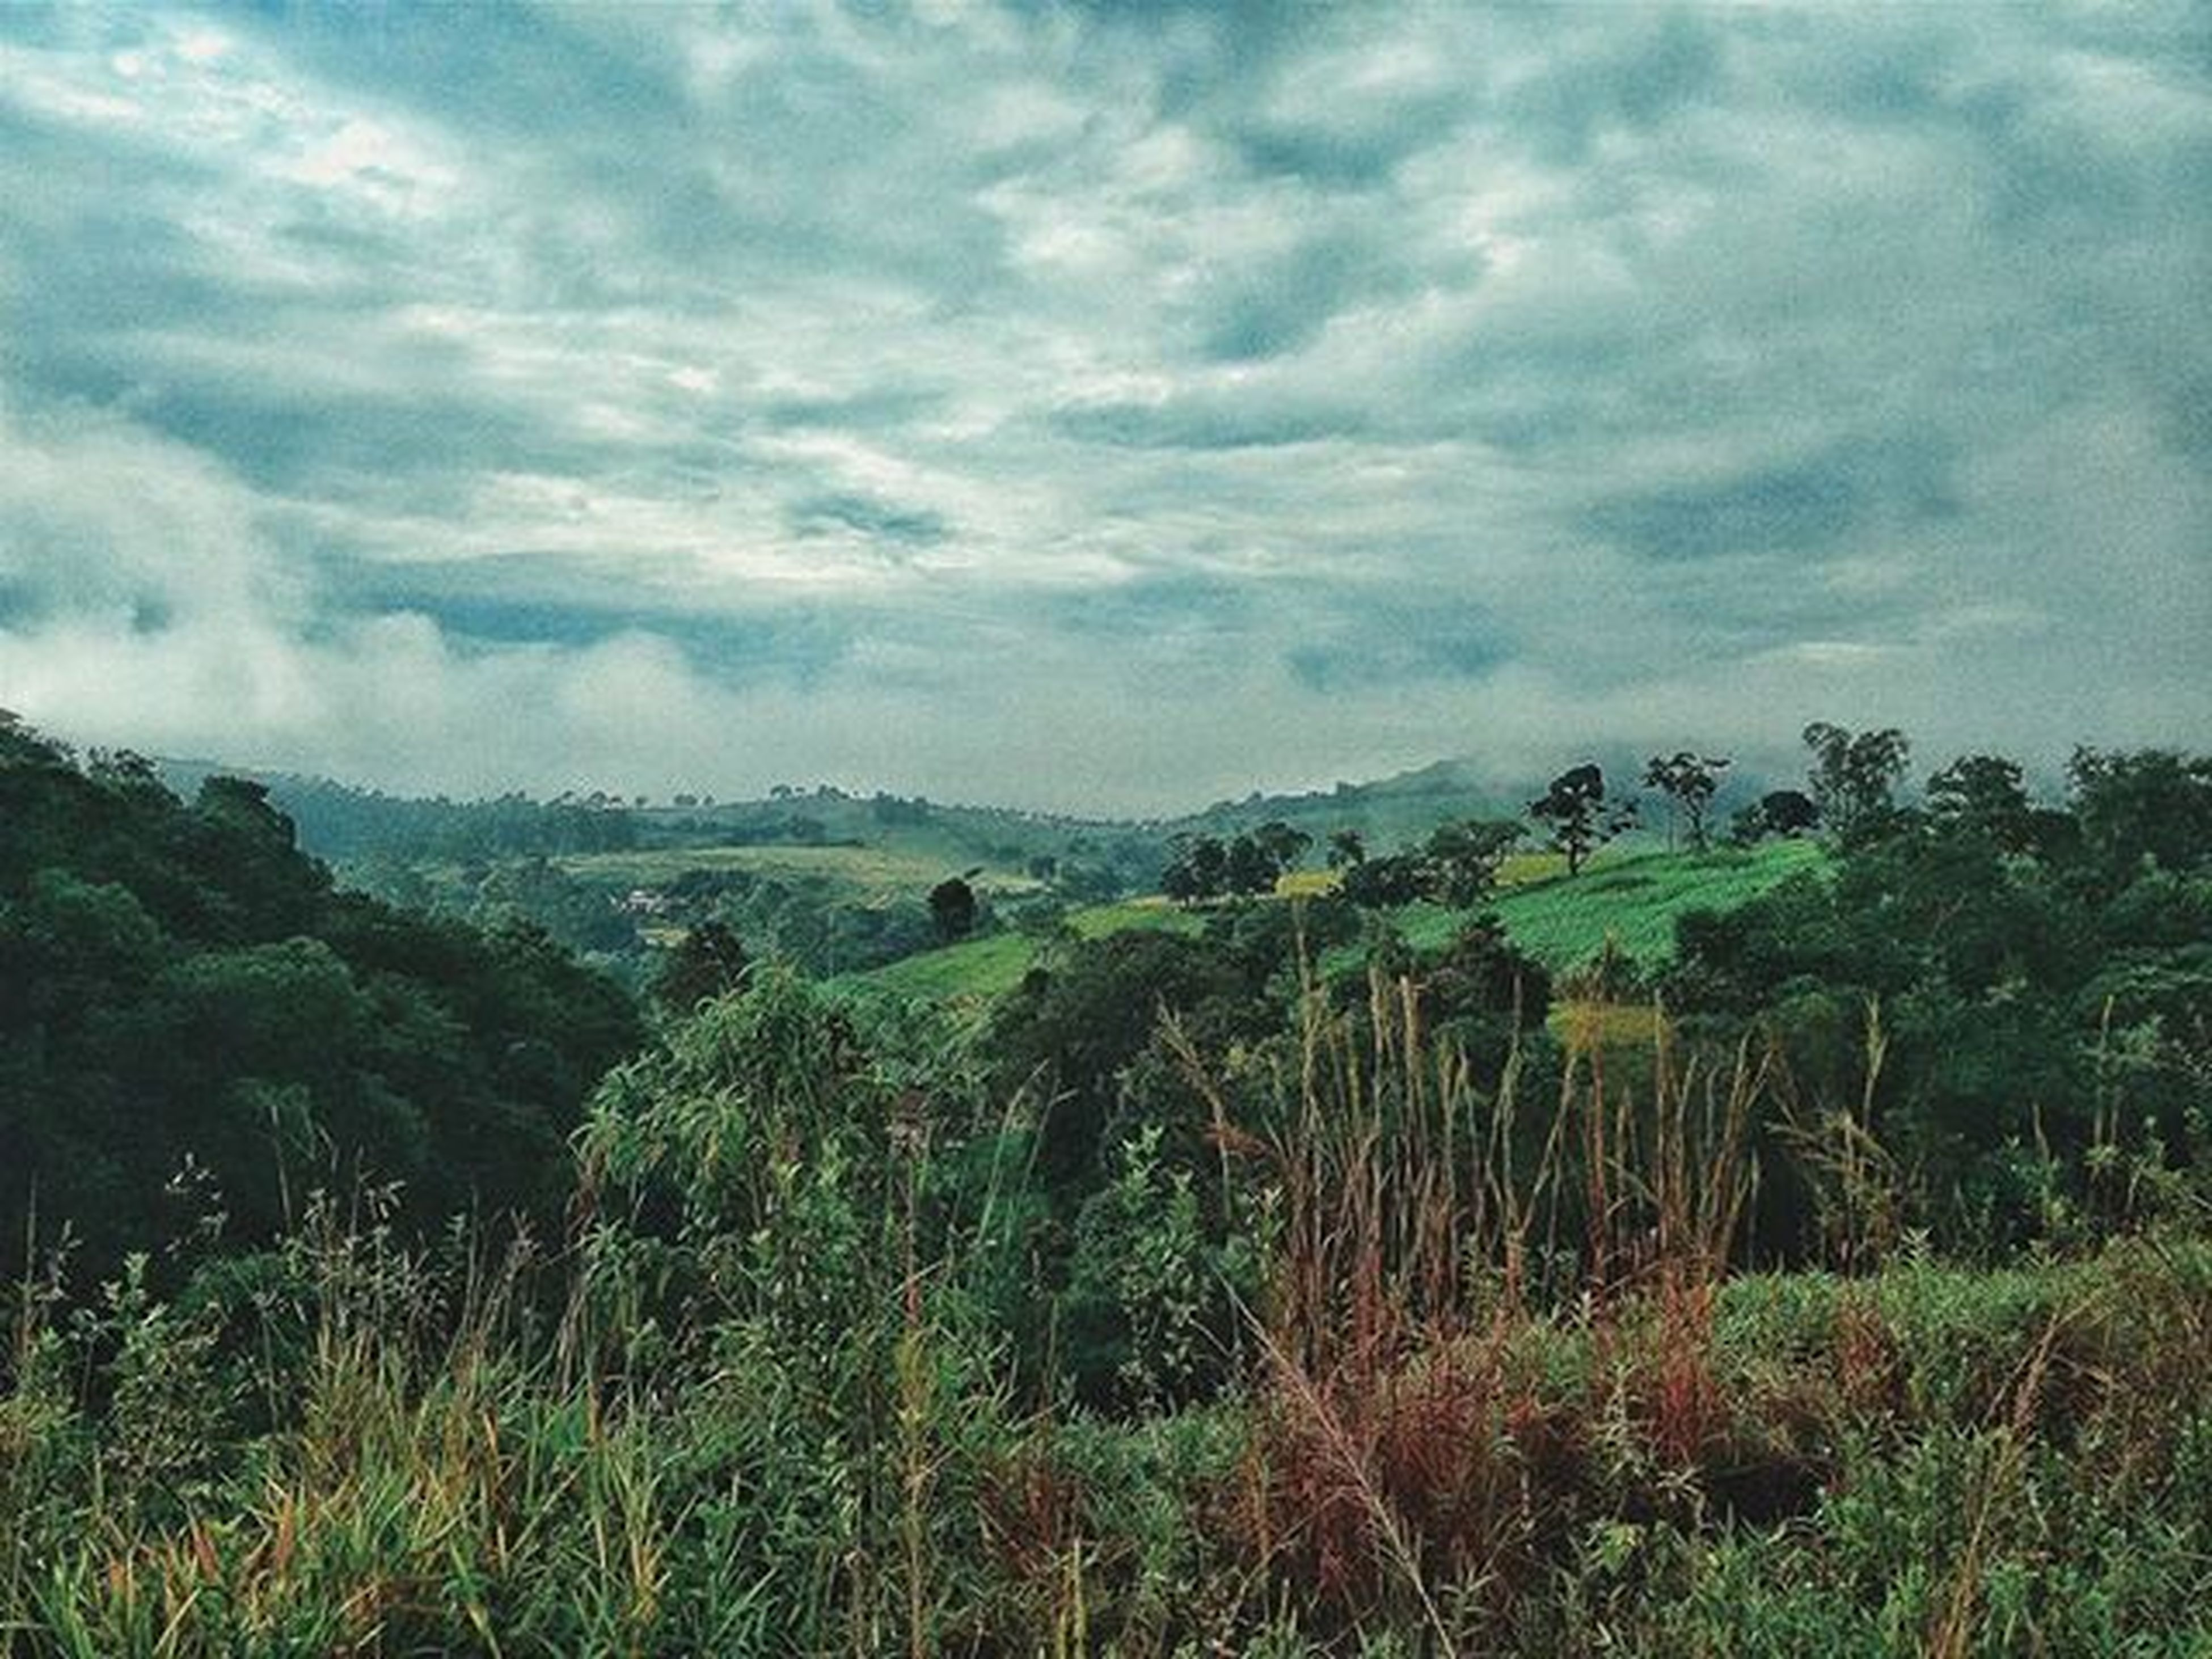 sky, cloud - sky, cloudy, landscape, tranquil scene, tranquility, scenics, nature, grass, field, beauty in nature, growth, cloud, plant, tree, non-urban scene, overcast, idyllic, day, outdoors